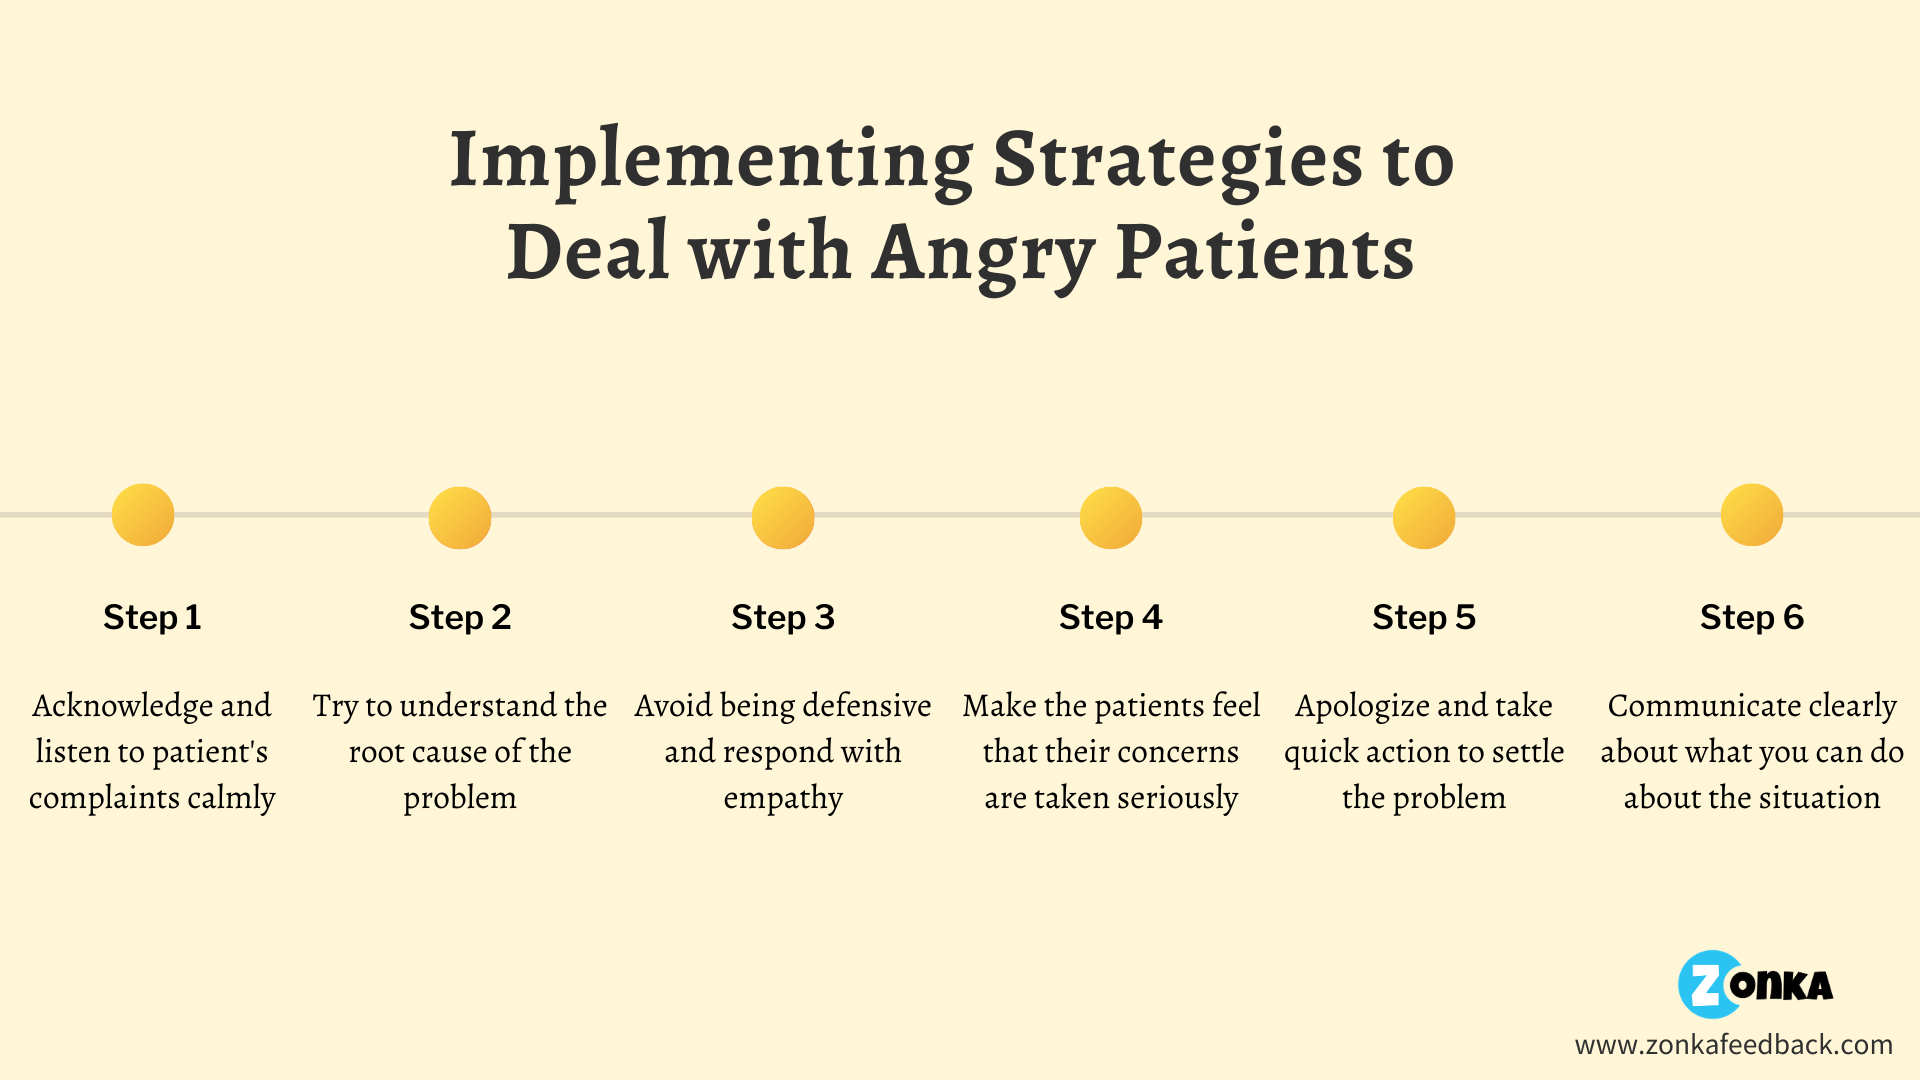 strategies-to-deal-with-angry-patients